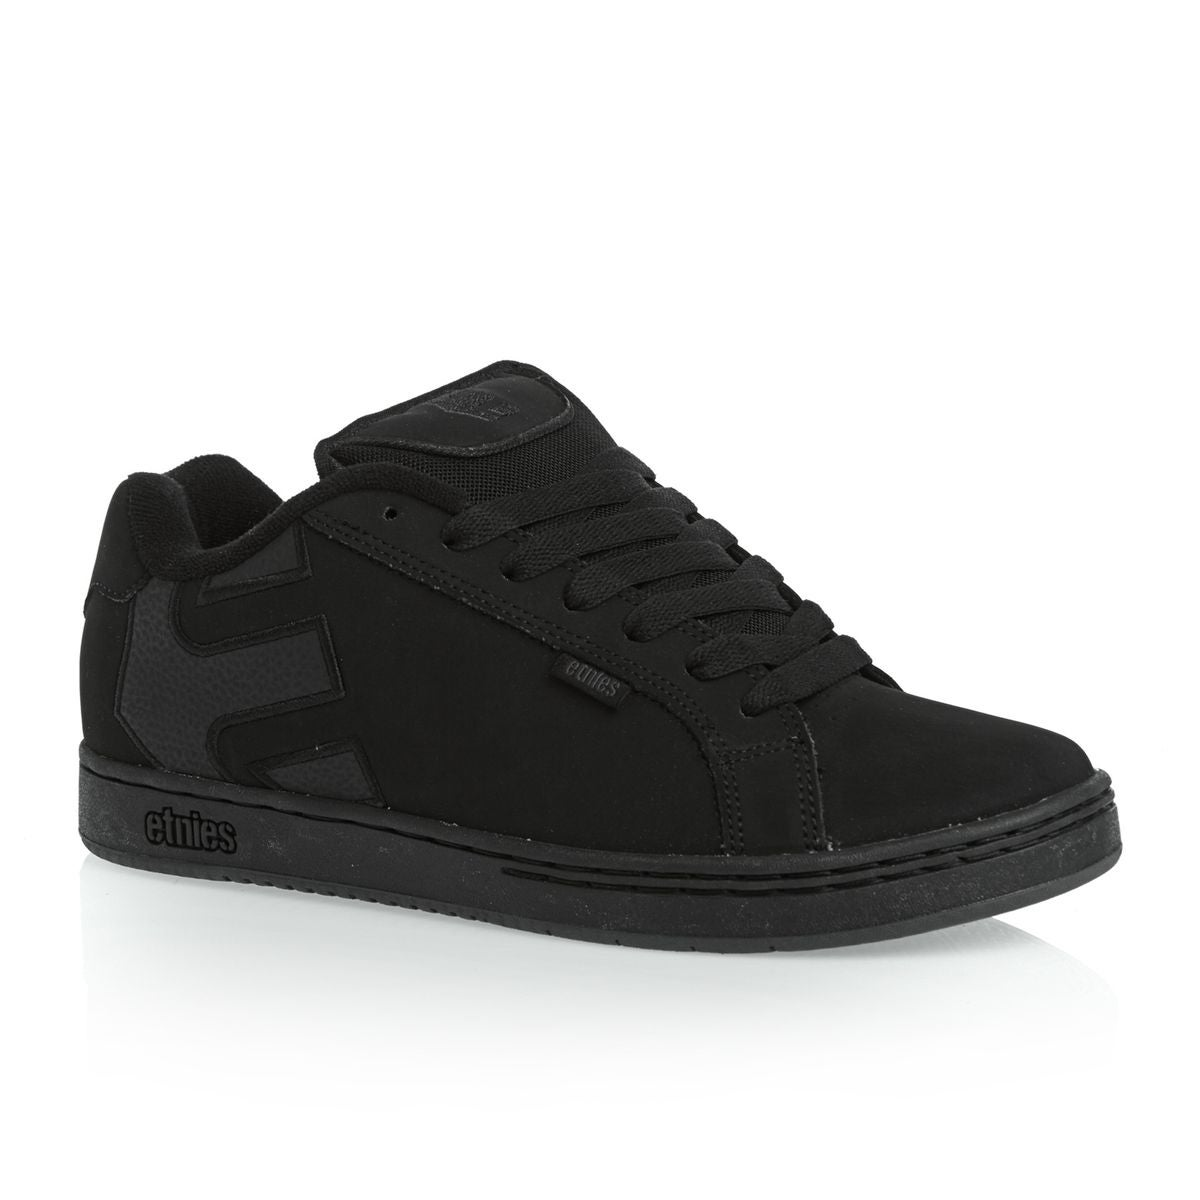 Chaussures Etnies Fader - Black Dirty Wash